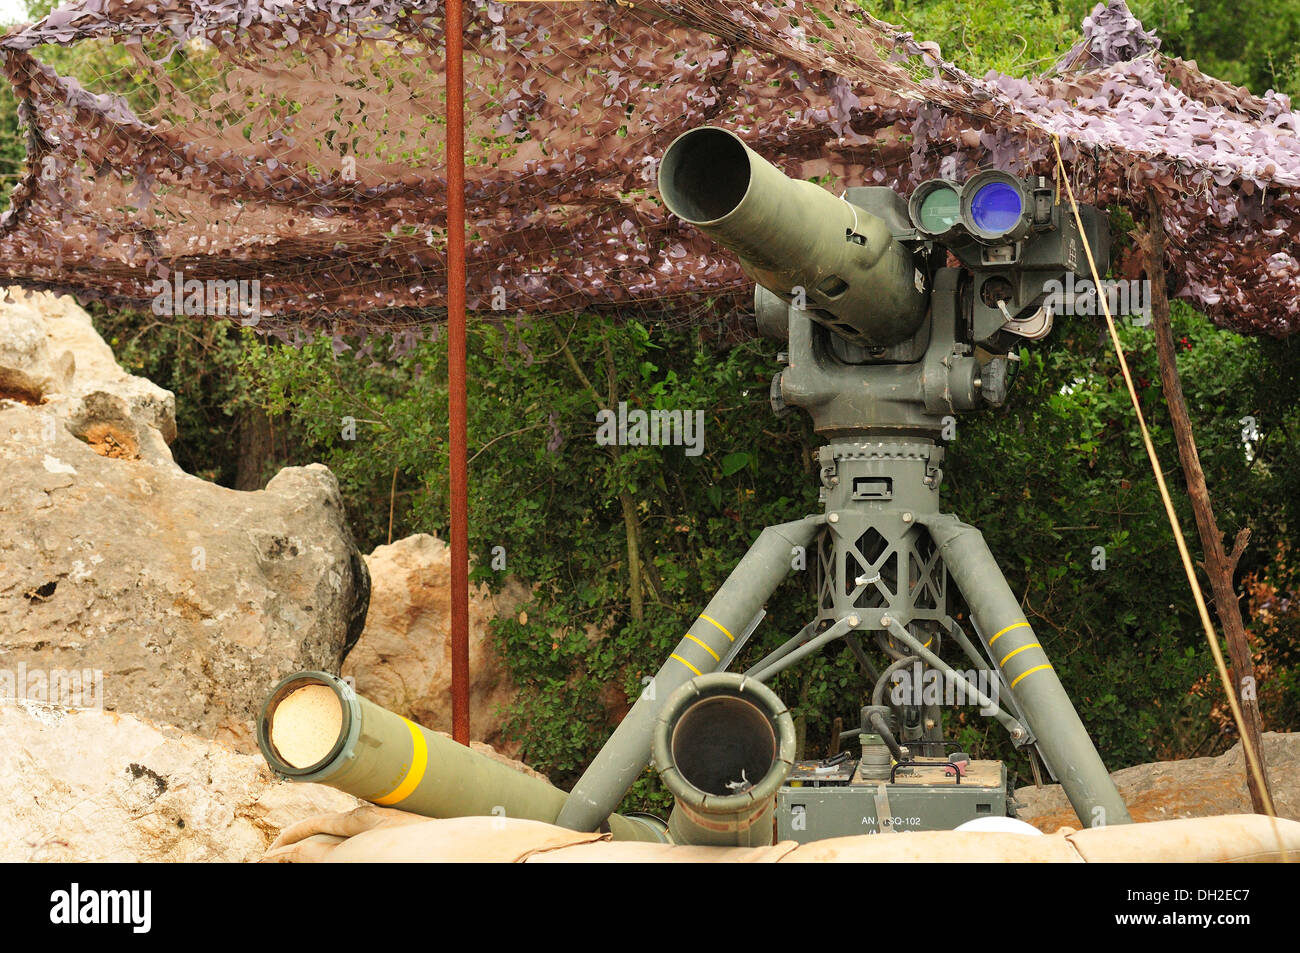 Tube launched Optically trcked Wire commanded BGM-71 TOW, developed in the USA, Mleeta, Hezbollah Museum, South Lebanon - Stock Image